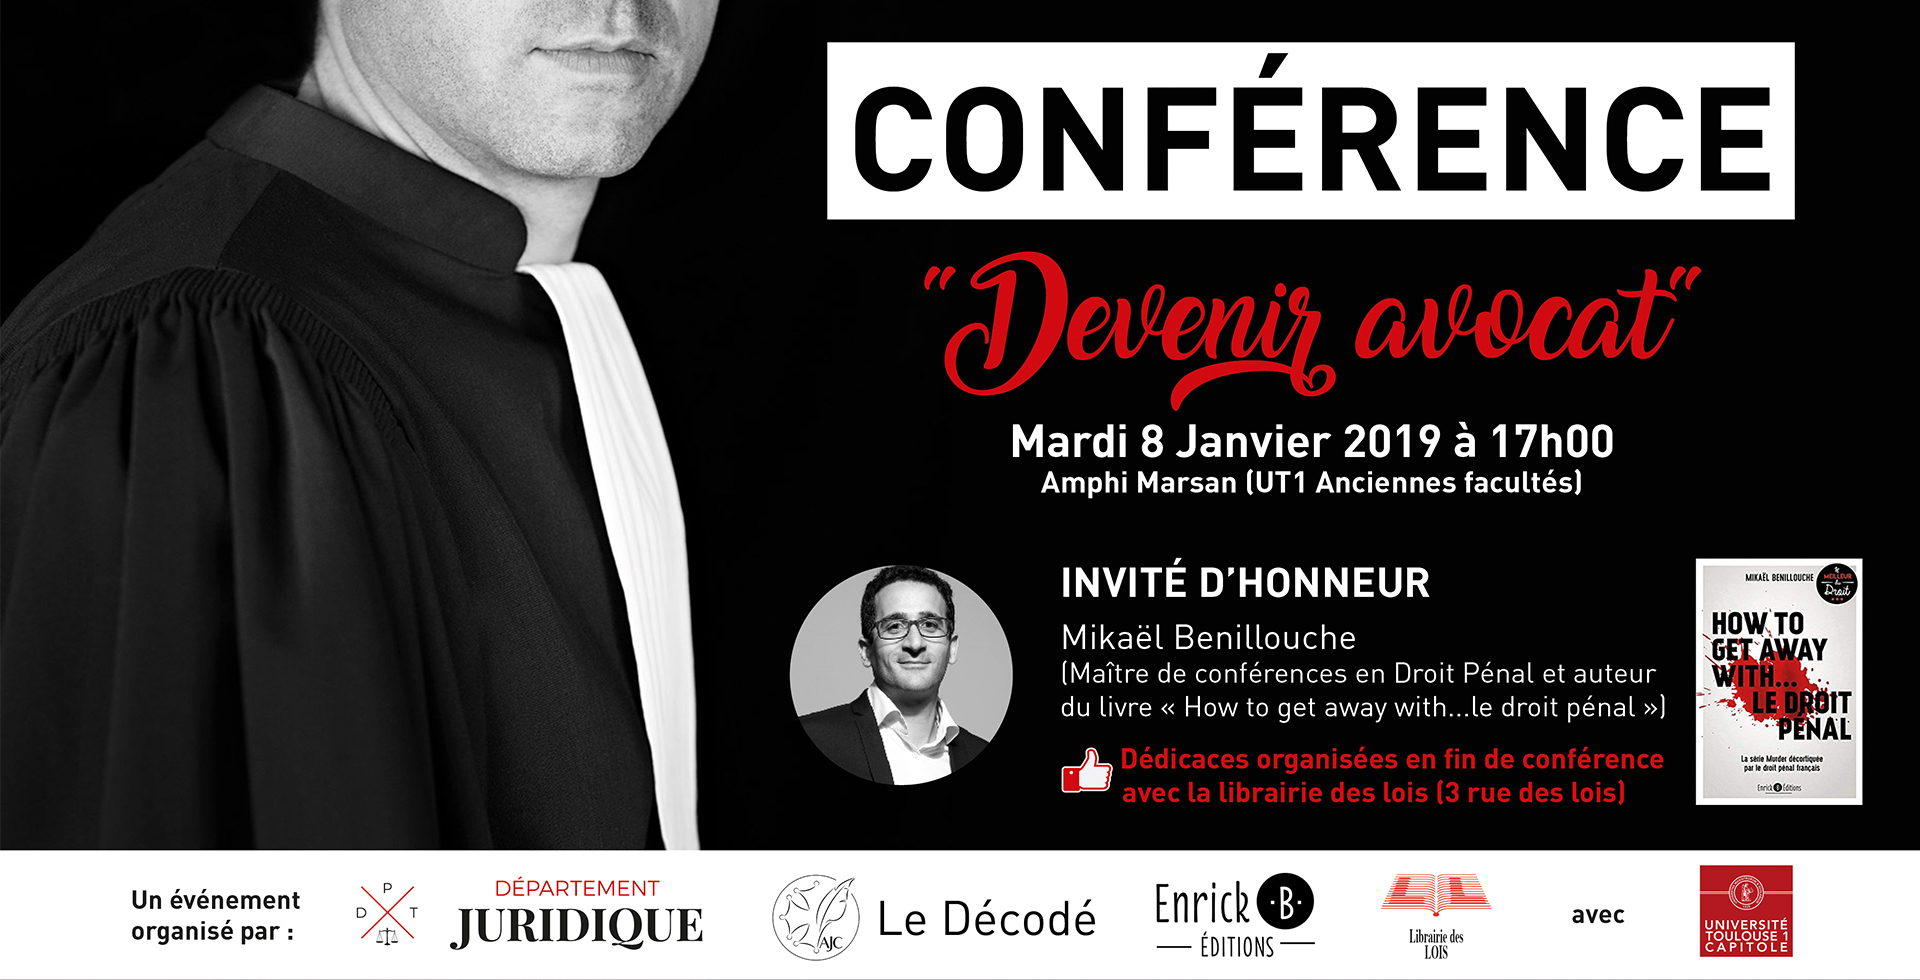 flyer-conference-droit